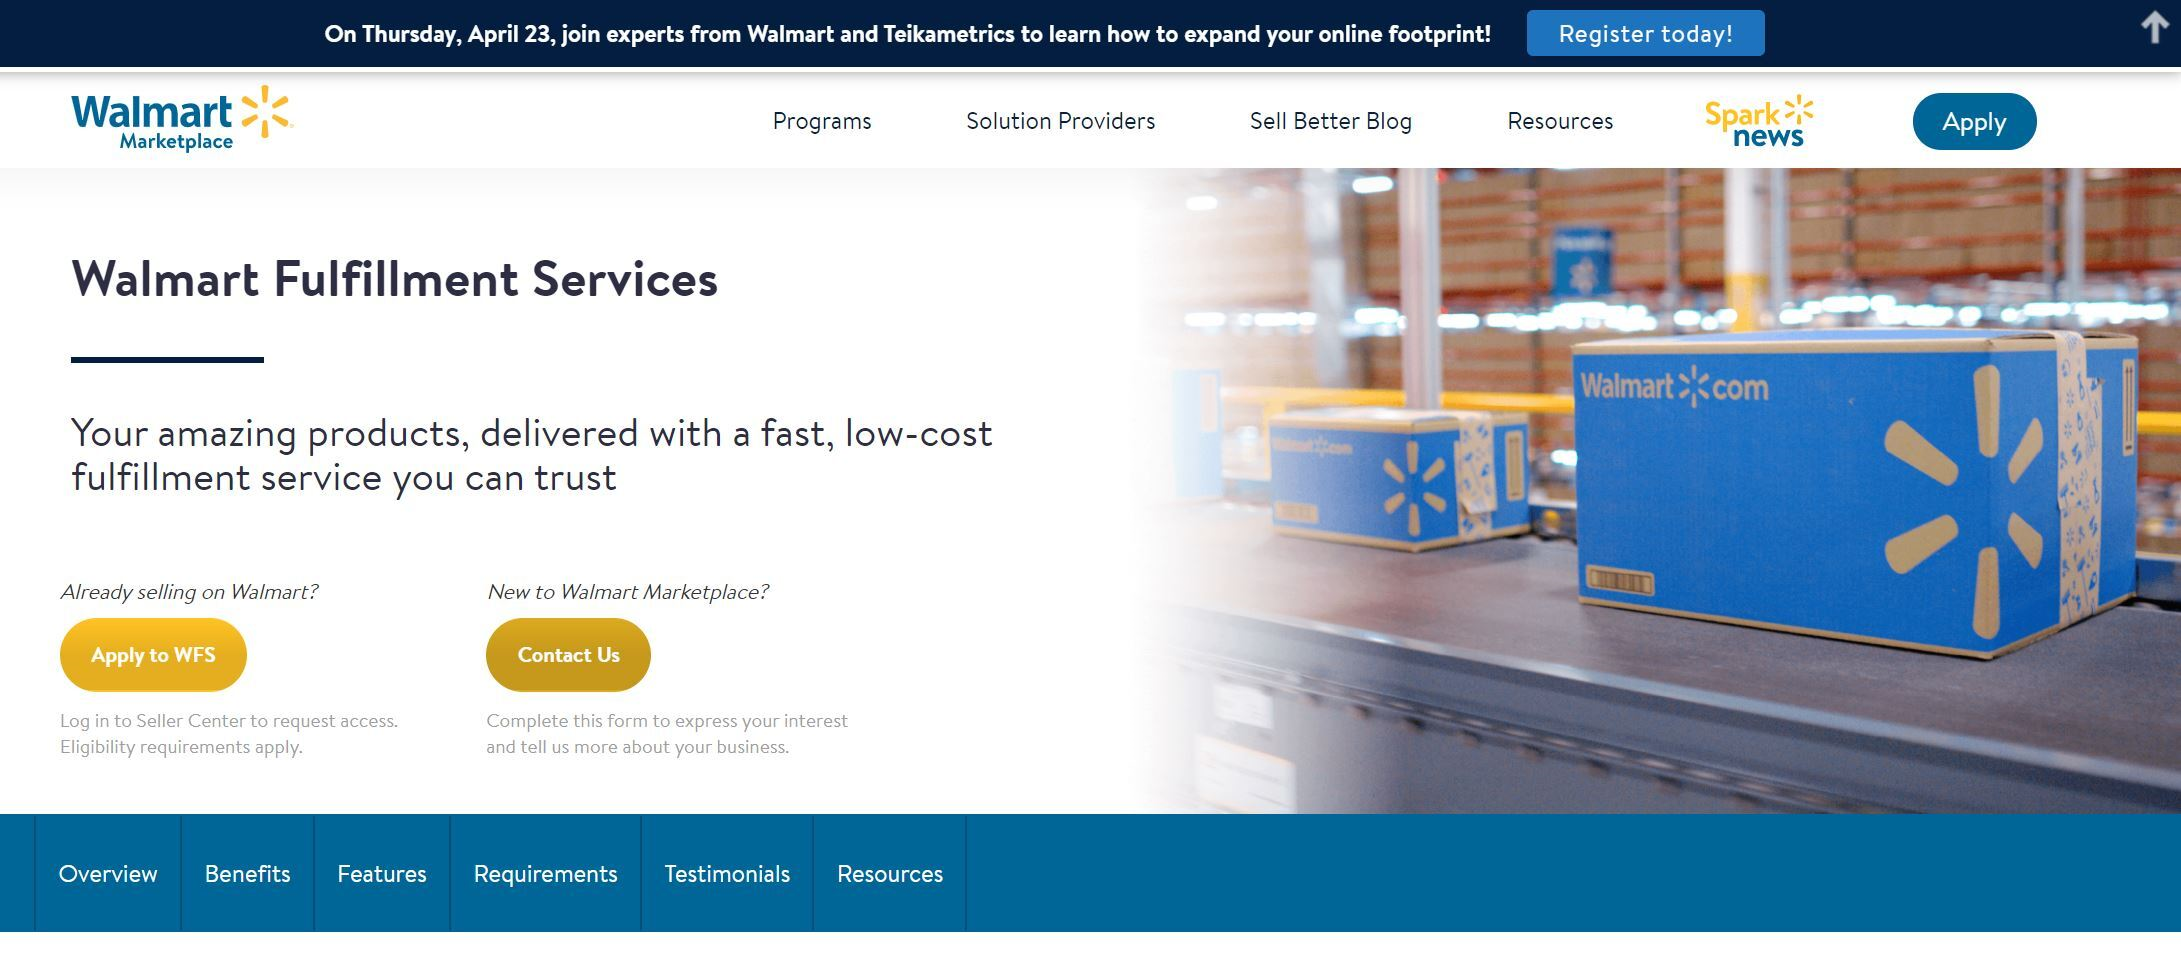 Walmart Fulfillment Services